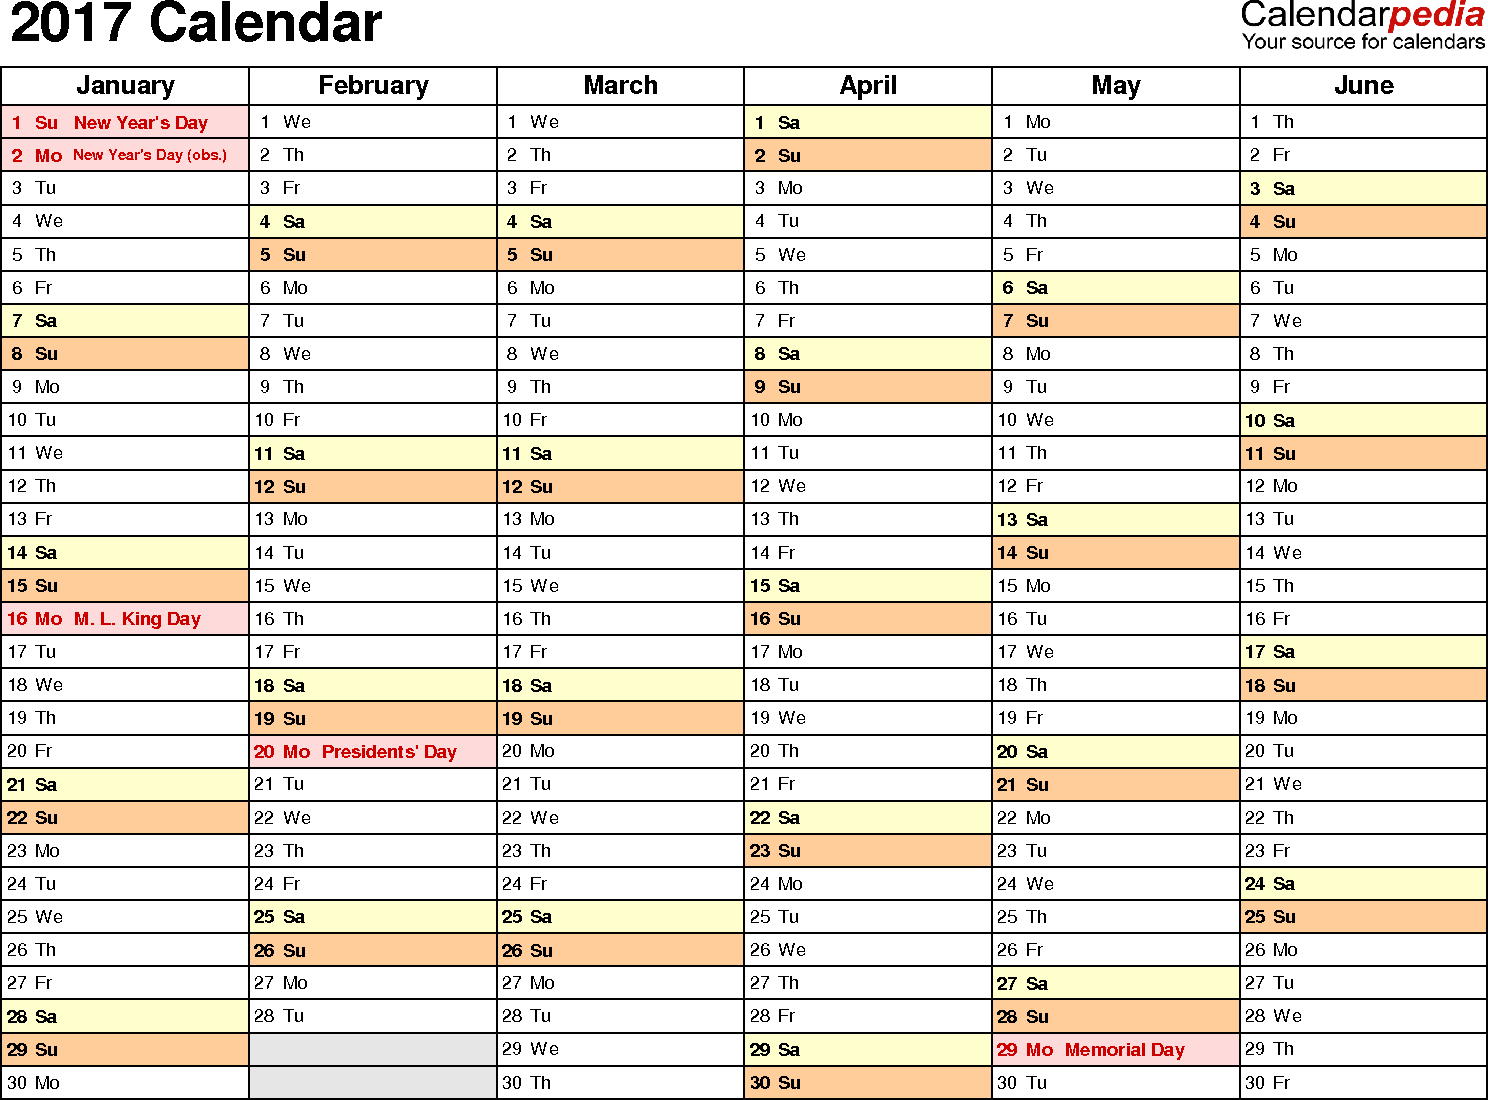 Ediblewildsus  Unique  Calendar  Download  Free Printable Excel Templates Xls With Luxury Template   Calendar For Excel Months Horizontally  Pages Landscape Orientation With Delectable Creating Excel Templates Also How To Show The Formula In Excel In Addition Loan Formula Excel And How To Do A Budget In Excel As Well As Regression Equation In Excel Additionally Excel  Online From Calendarpediacom With Ediblewildsus  Luxury  Calendar  Download  Free Printable Excel Templates Xls With Delectable Template   Calendar For Excel Months Horizontally  Pages Landscape Orientation And Unique Creating Excel Templates Also How To Show The Formula In Excel In Addition Loan Formula Excel From Calendarpediacom